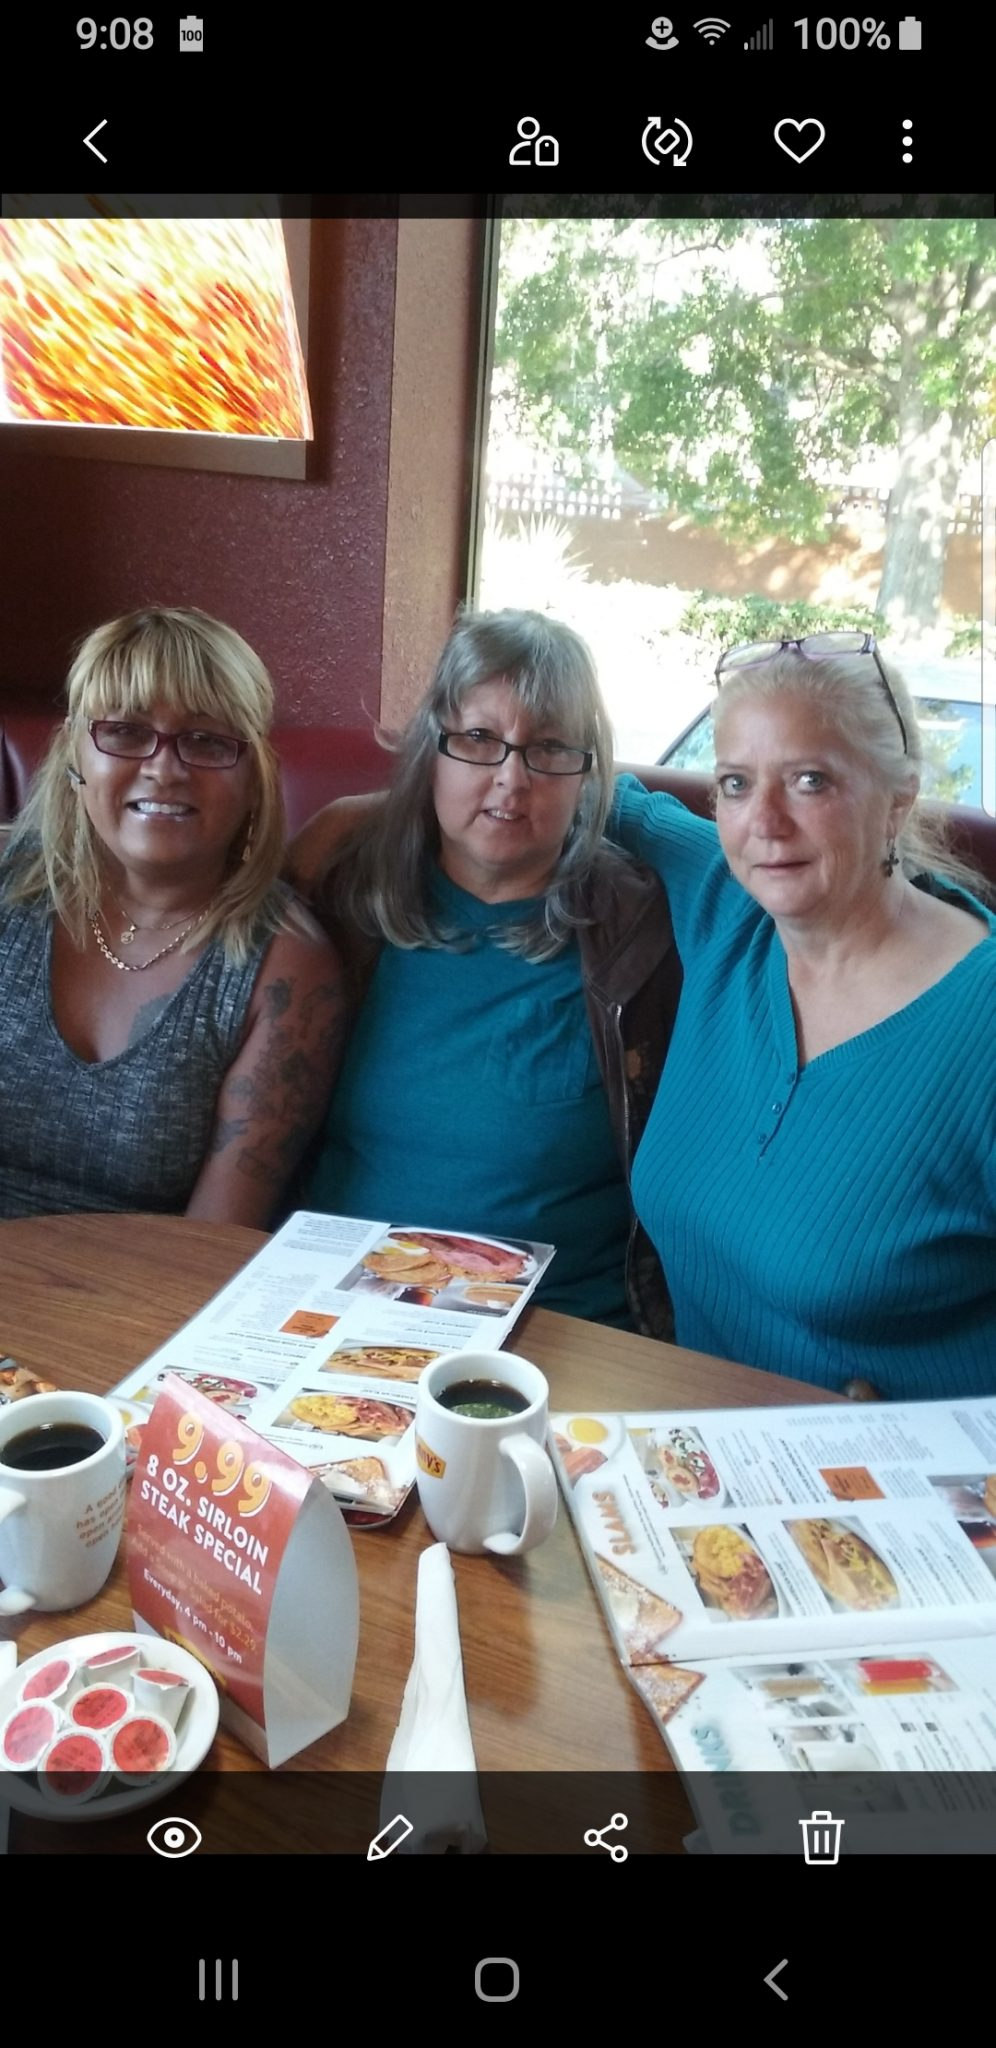 Birthday Breakfast at Denny's in may of 2017 with Jenny, Sandy and Cindy we sure had fun that day❤ Thank you Cindy your Big Sister Sandy sure enjoyed you being there ❤Cindy it's still unbelievable that your gone but I now your in a better place may you be in the glory of God and the Angel's until we meet again  R.I.P Cindy ❤